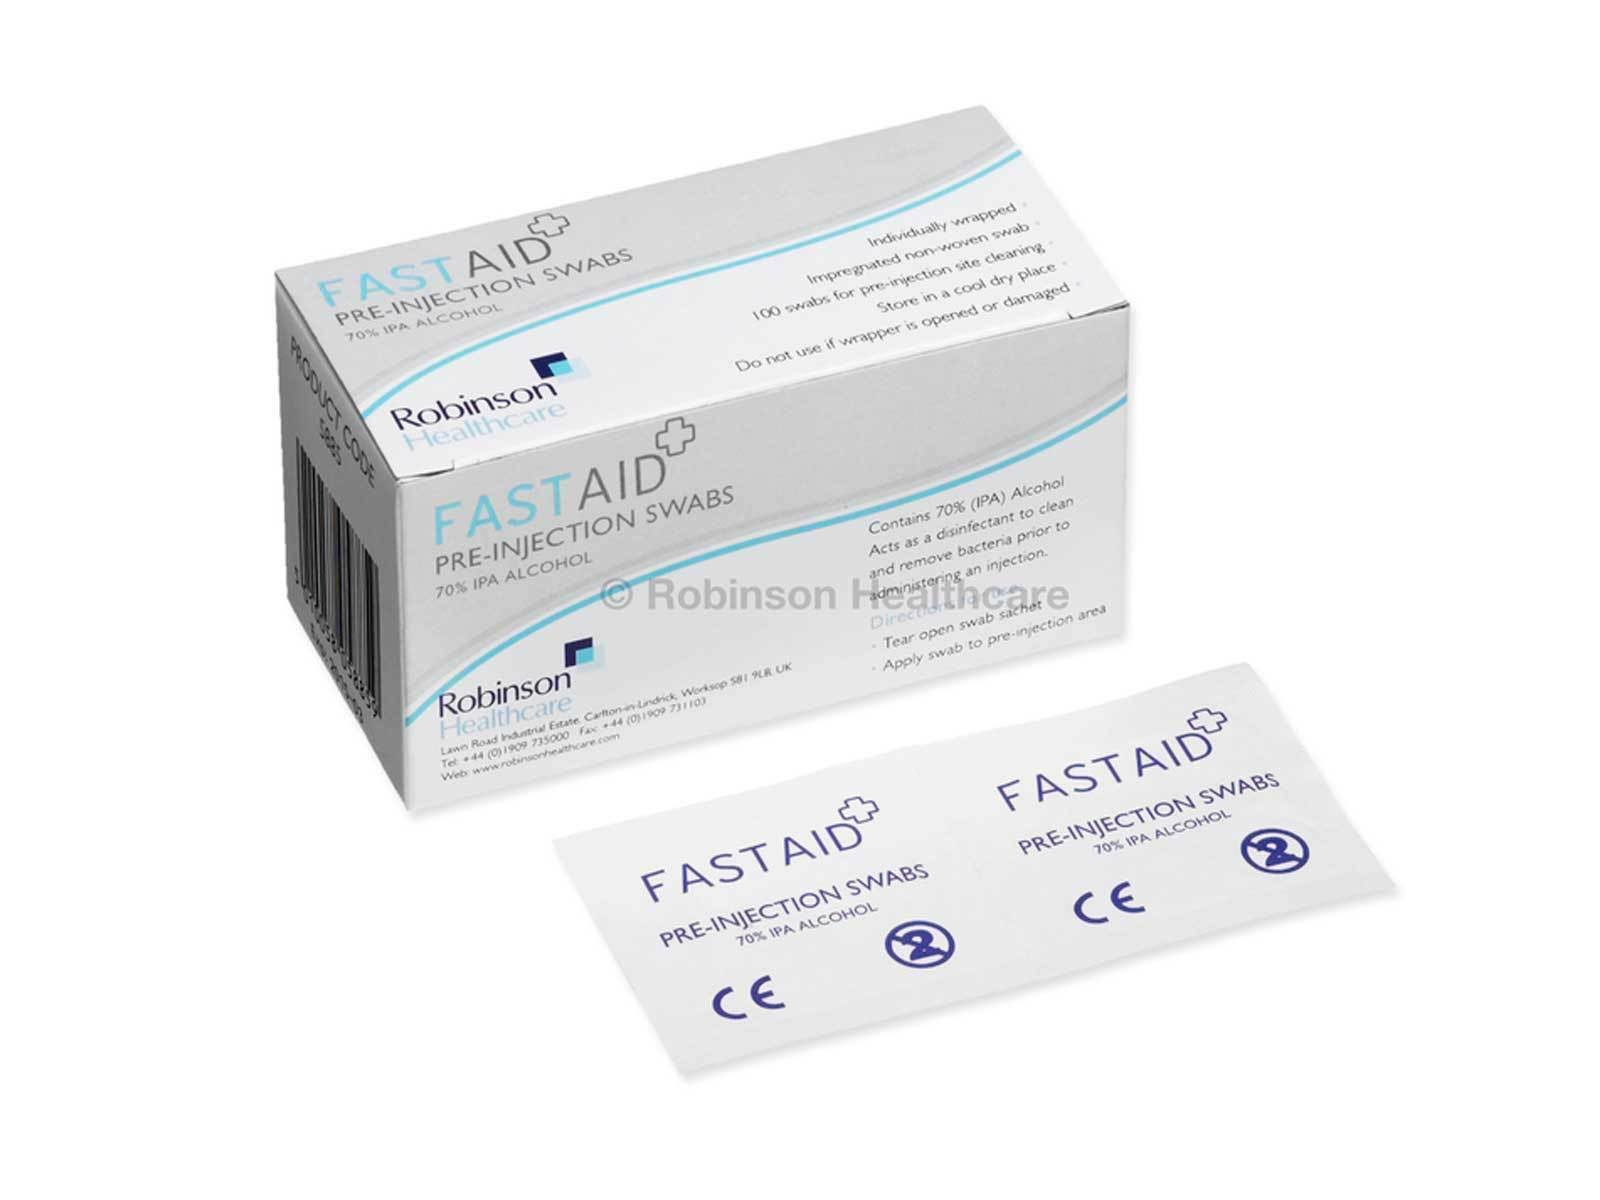 Fast Aid Pre-Injection Swabs - 100 Pack